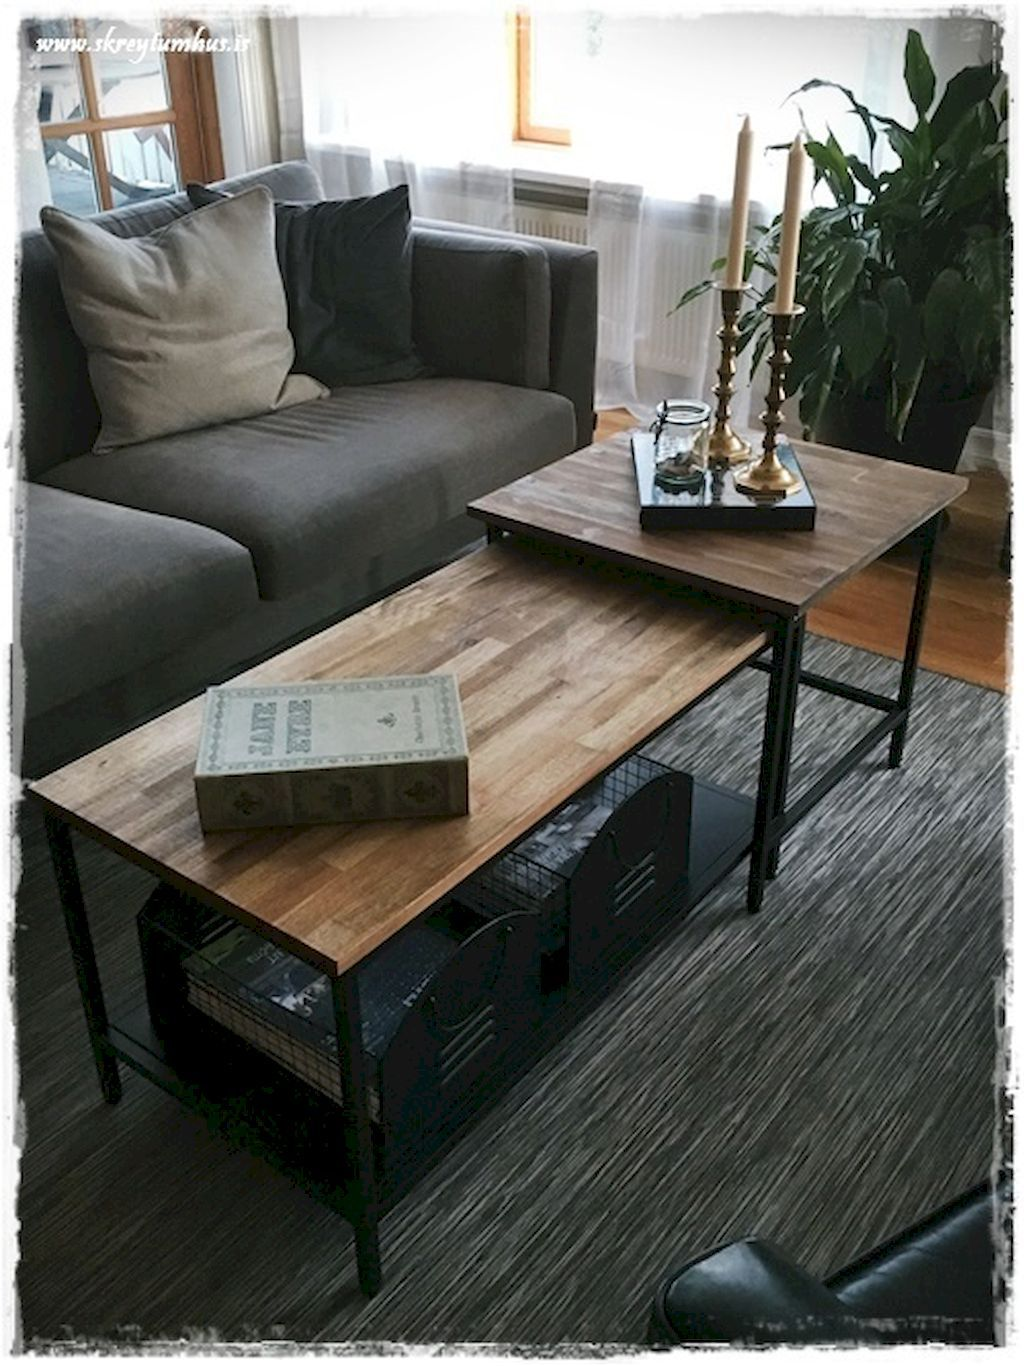 Cool 80 Incredibly Creative IKEA Hacks Living Room Furniture  Https://decorapatio.com/2017/06/13/80 Incredibly Creative Ikea  Hacks Living Room Furniture/